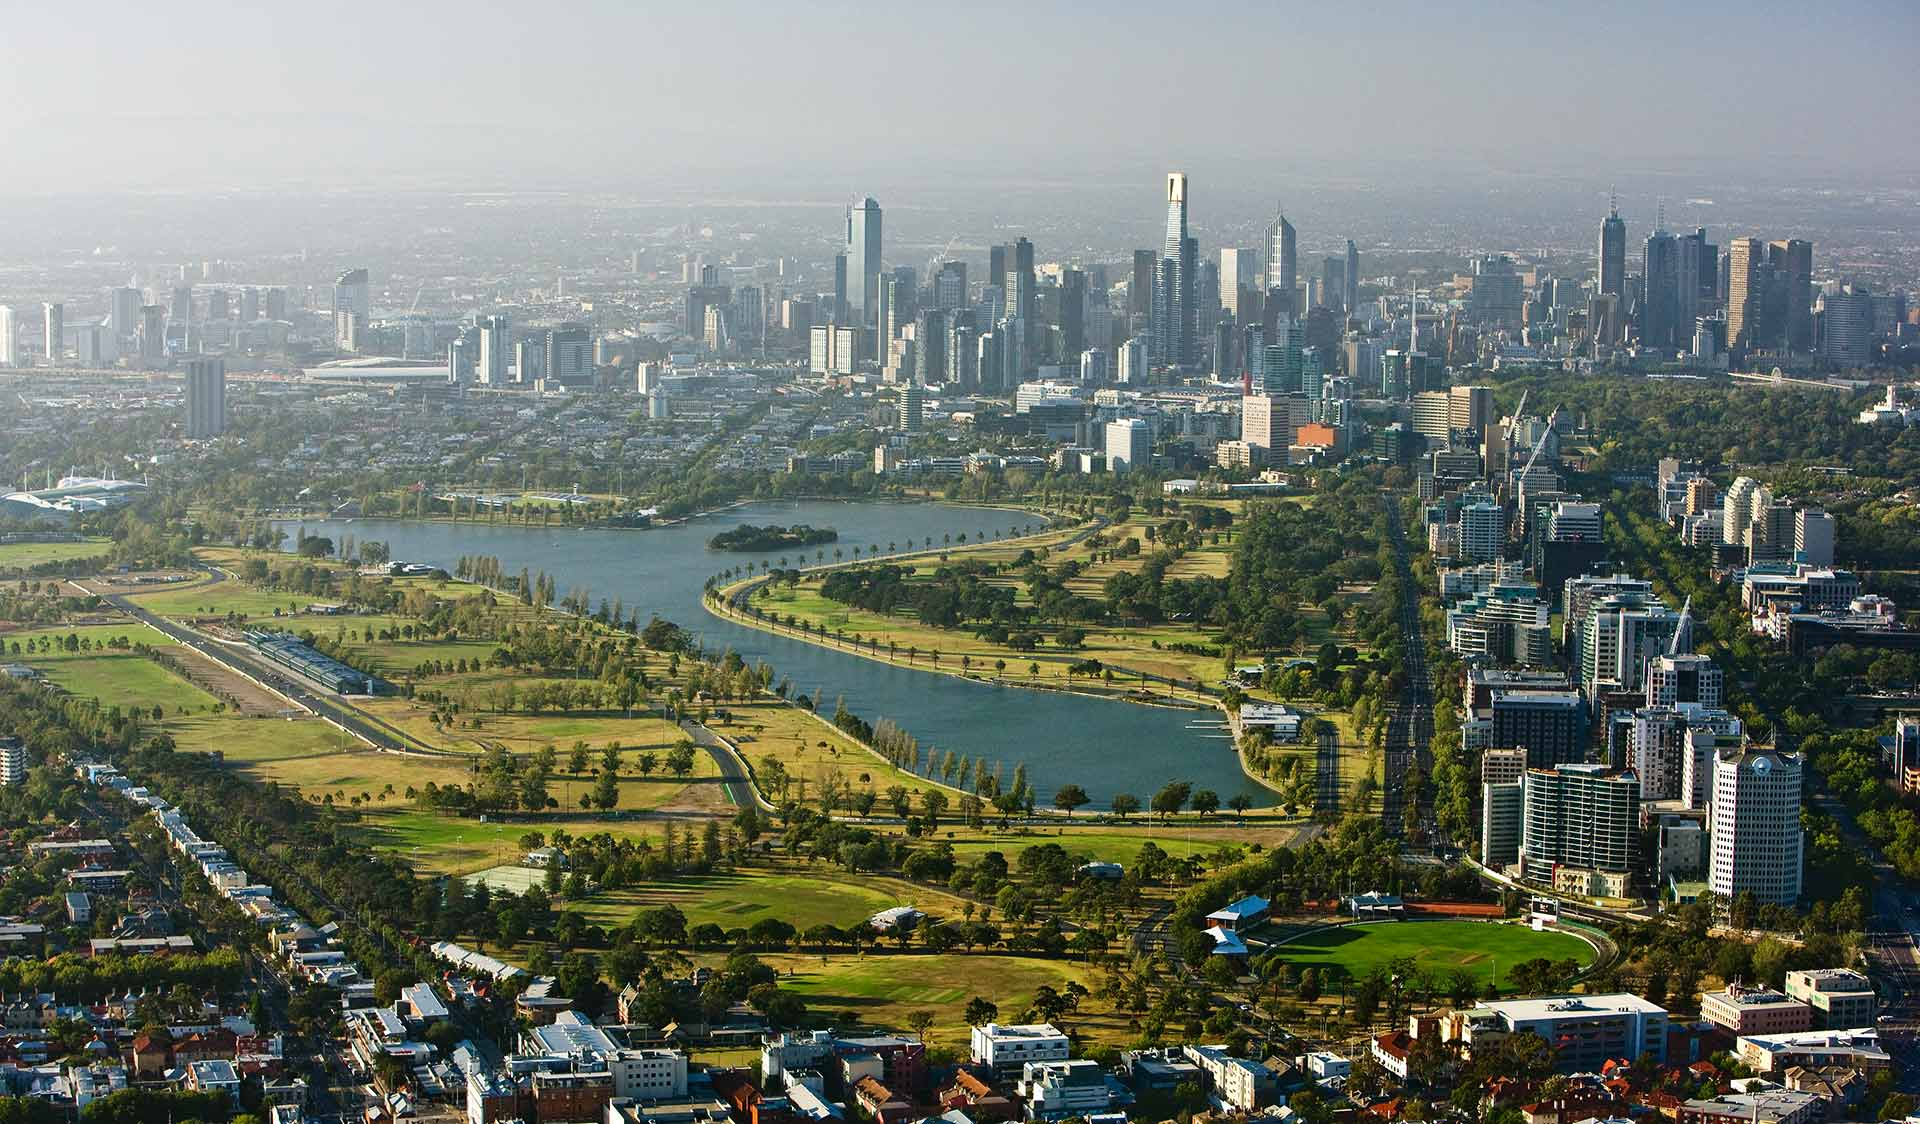 An aerial view of Albert Park Lake with the Melbourne CBD skyline in the background.